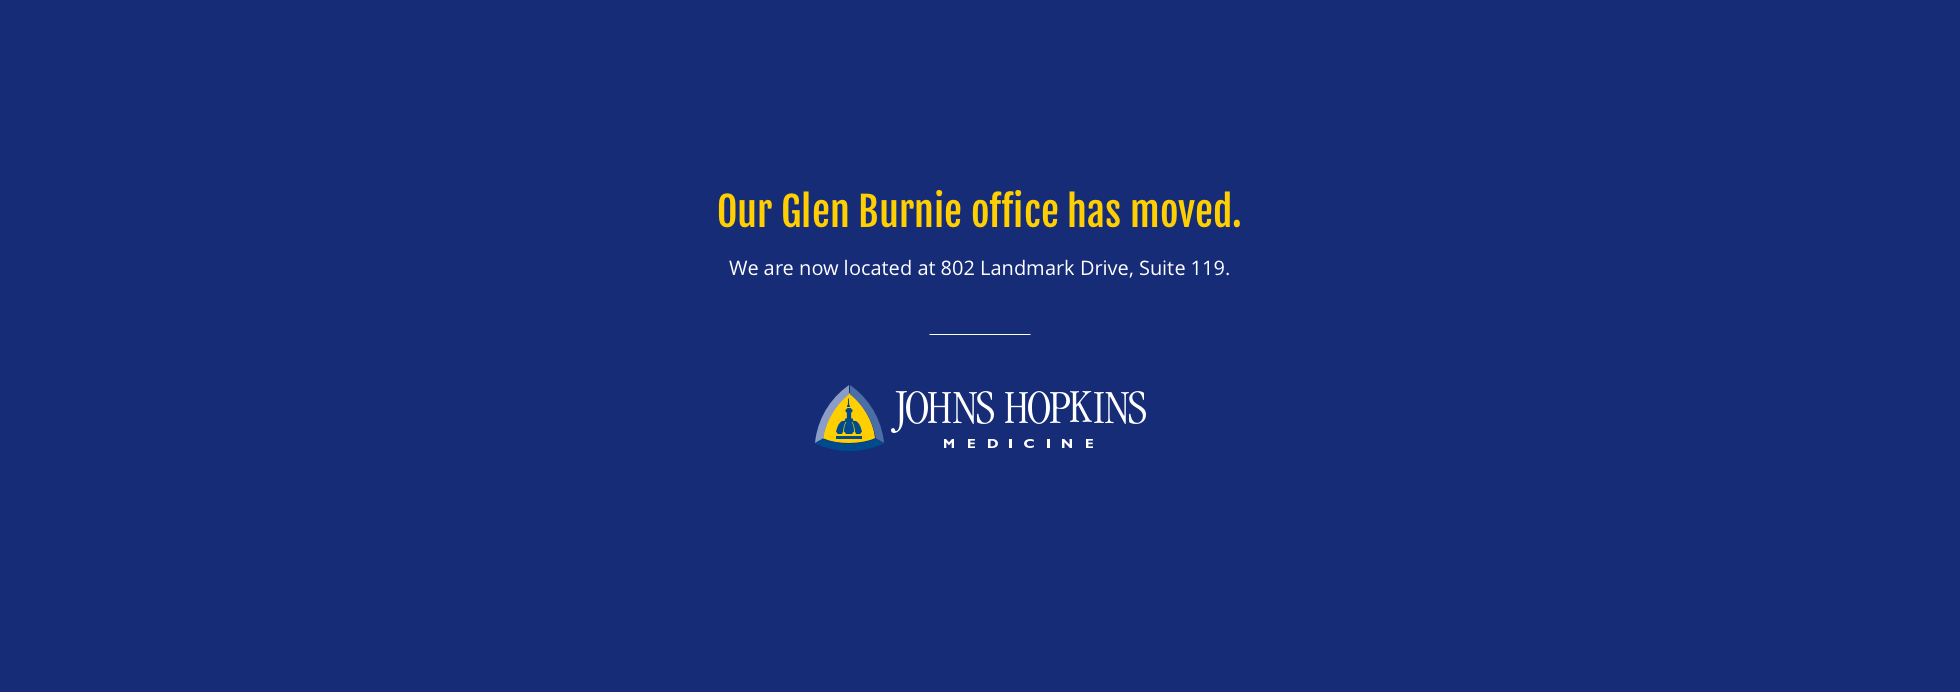 Our Glen Burnie Office is moving!